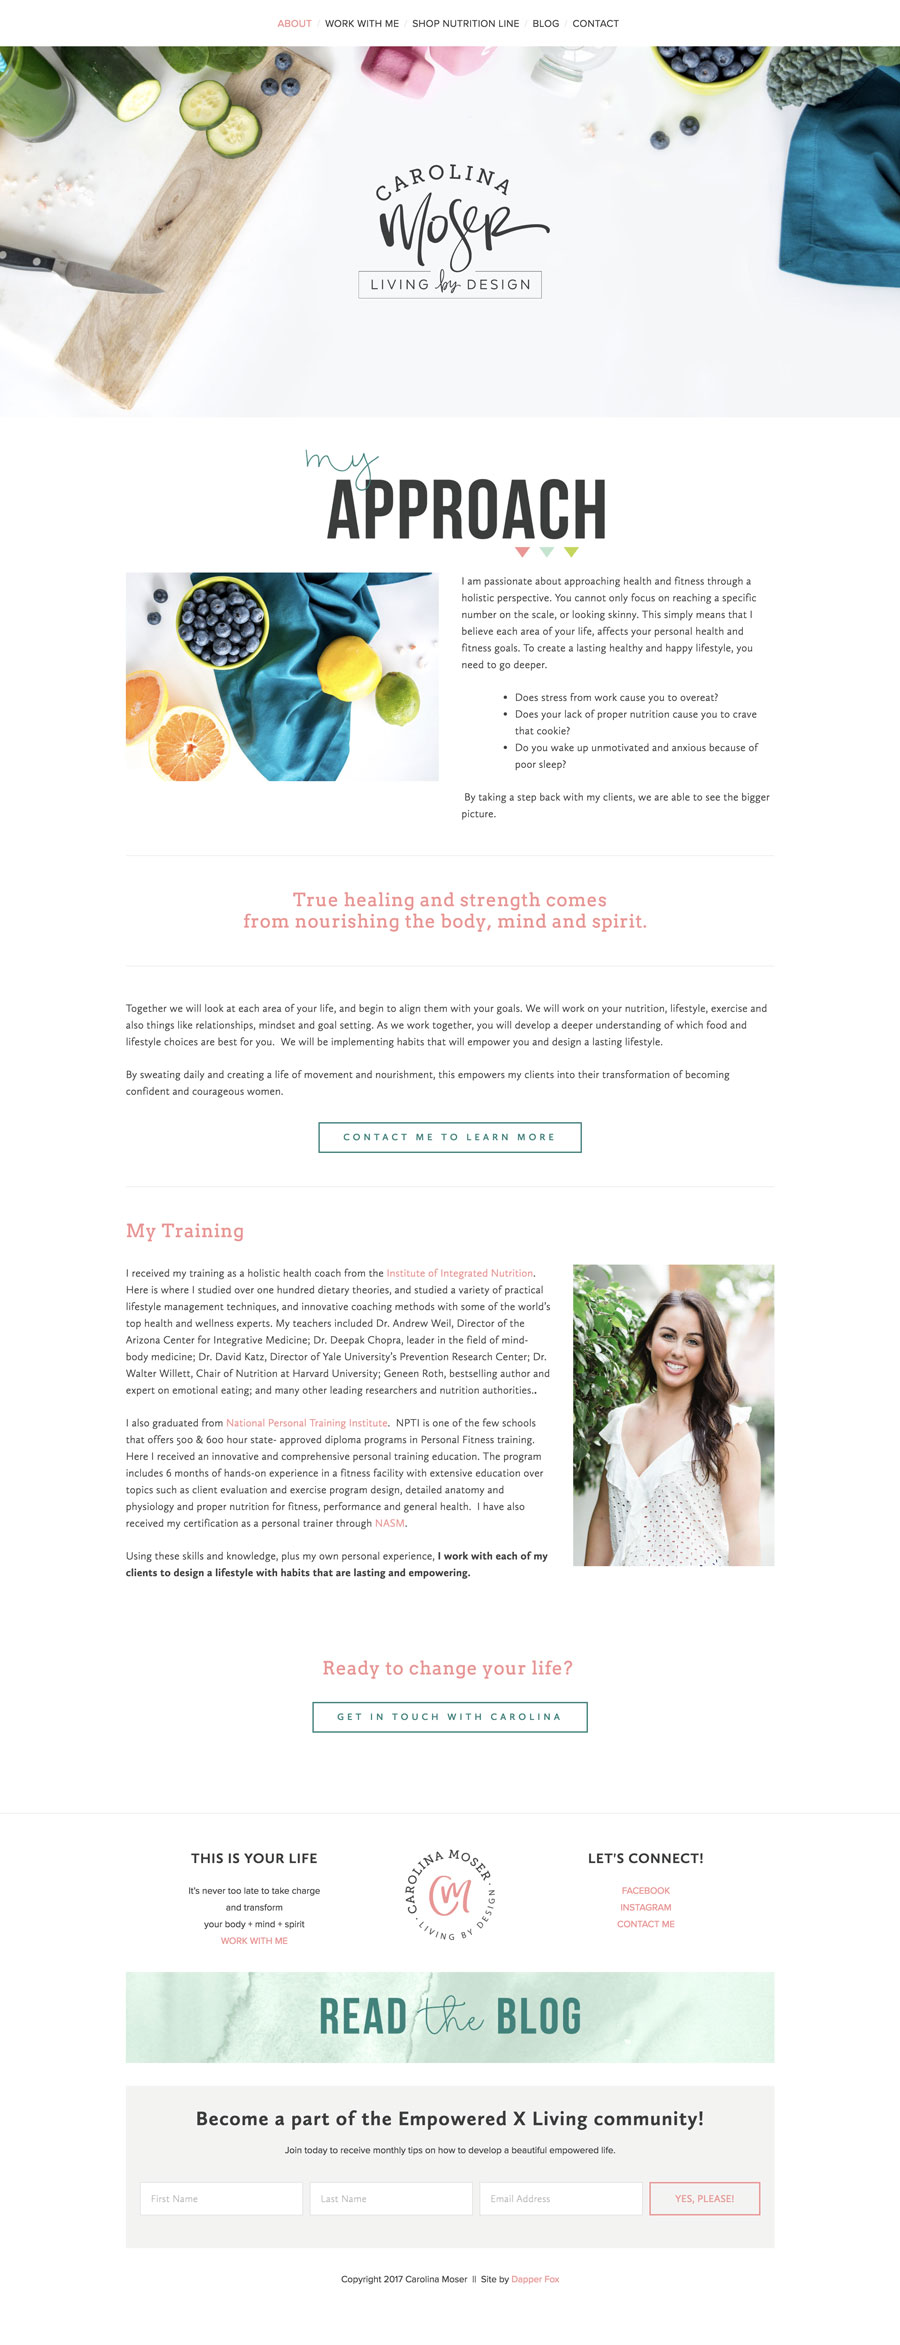 Website Design for Nutritionist, Health Coach and Fitness Website Utah Squarespace Website Design and Branding by Dapper Fox Design